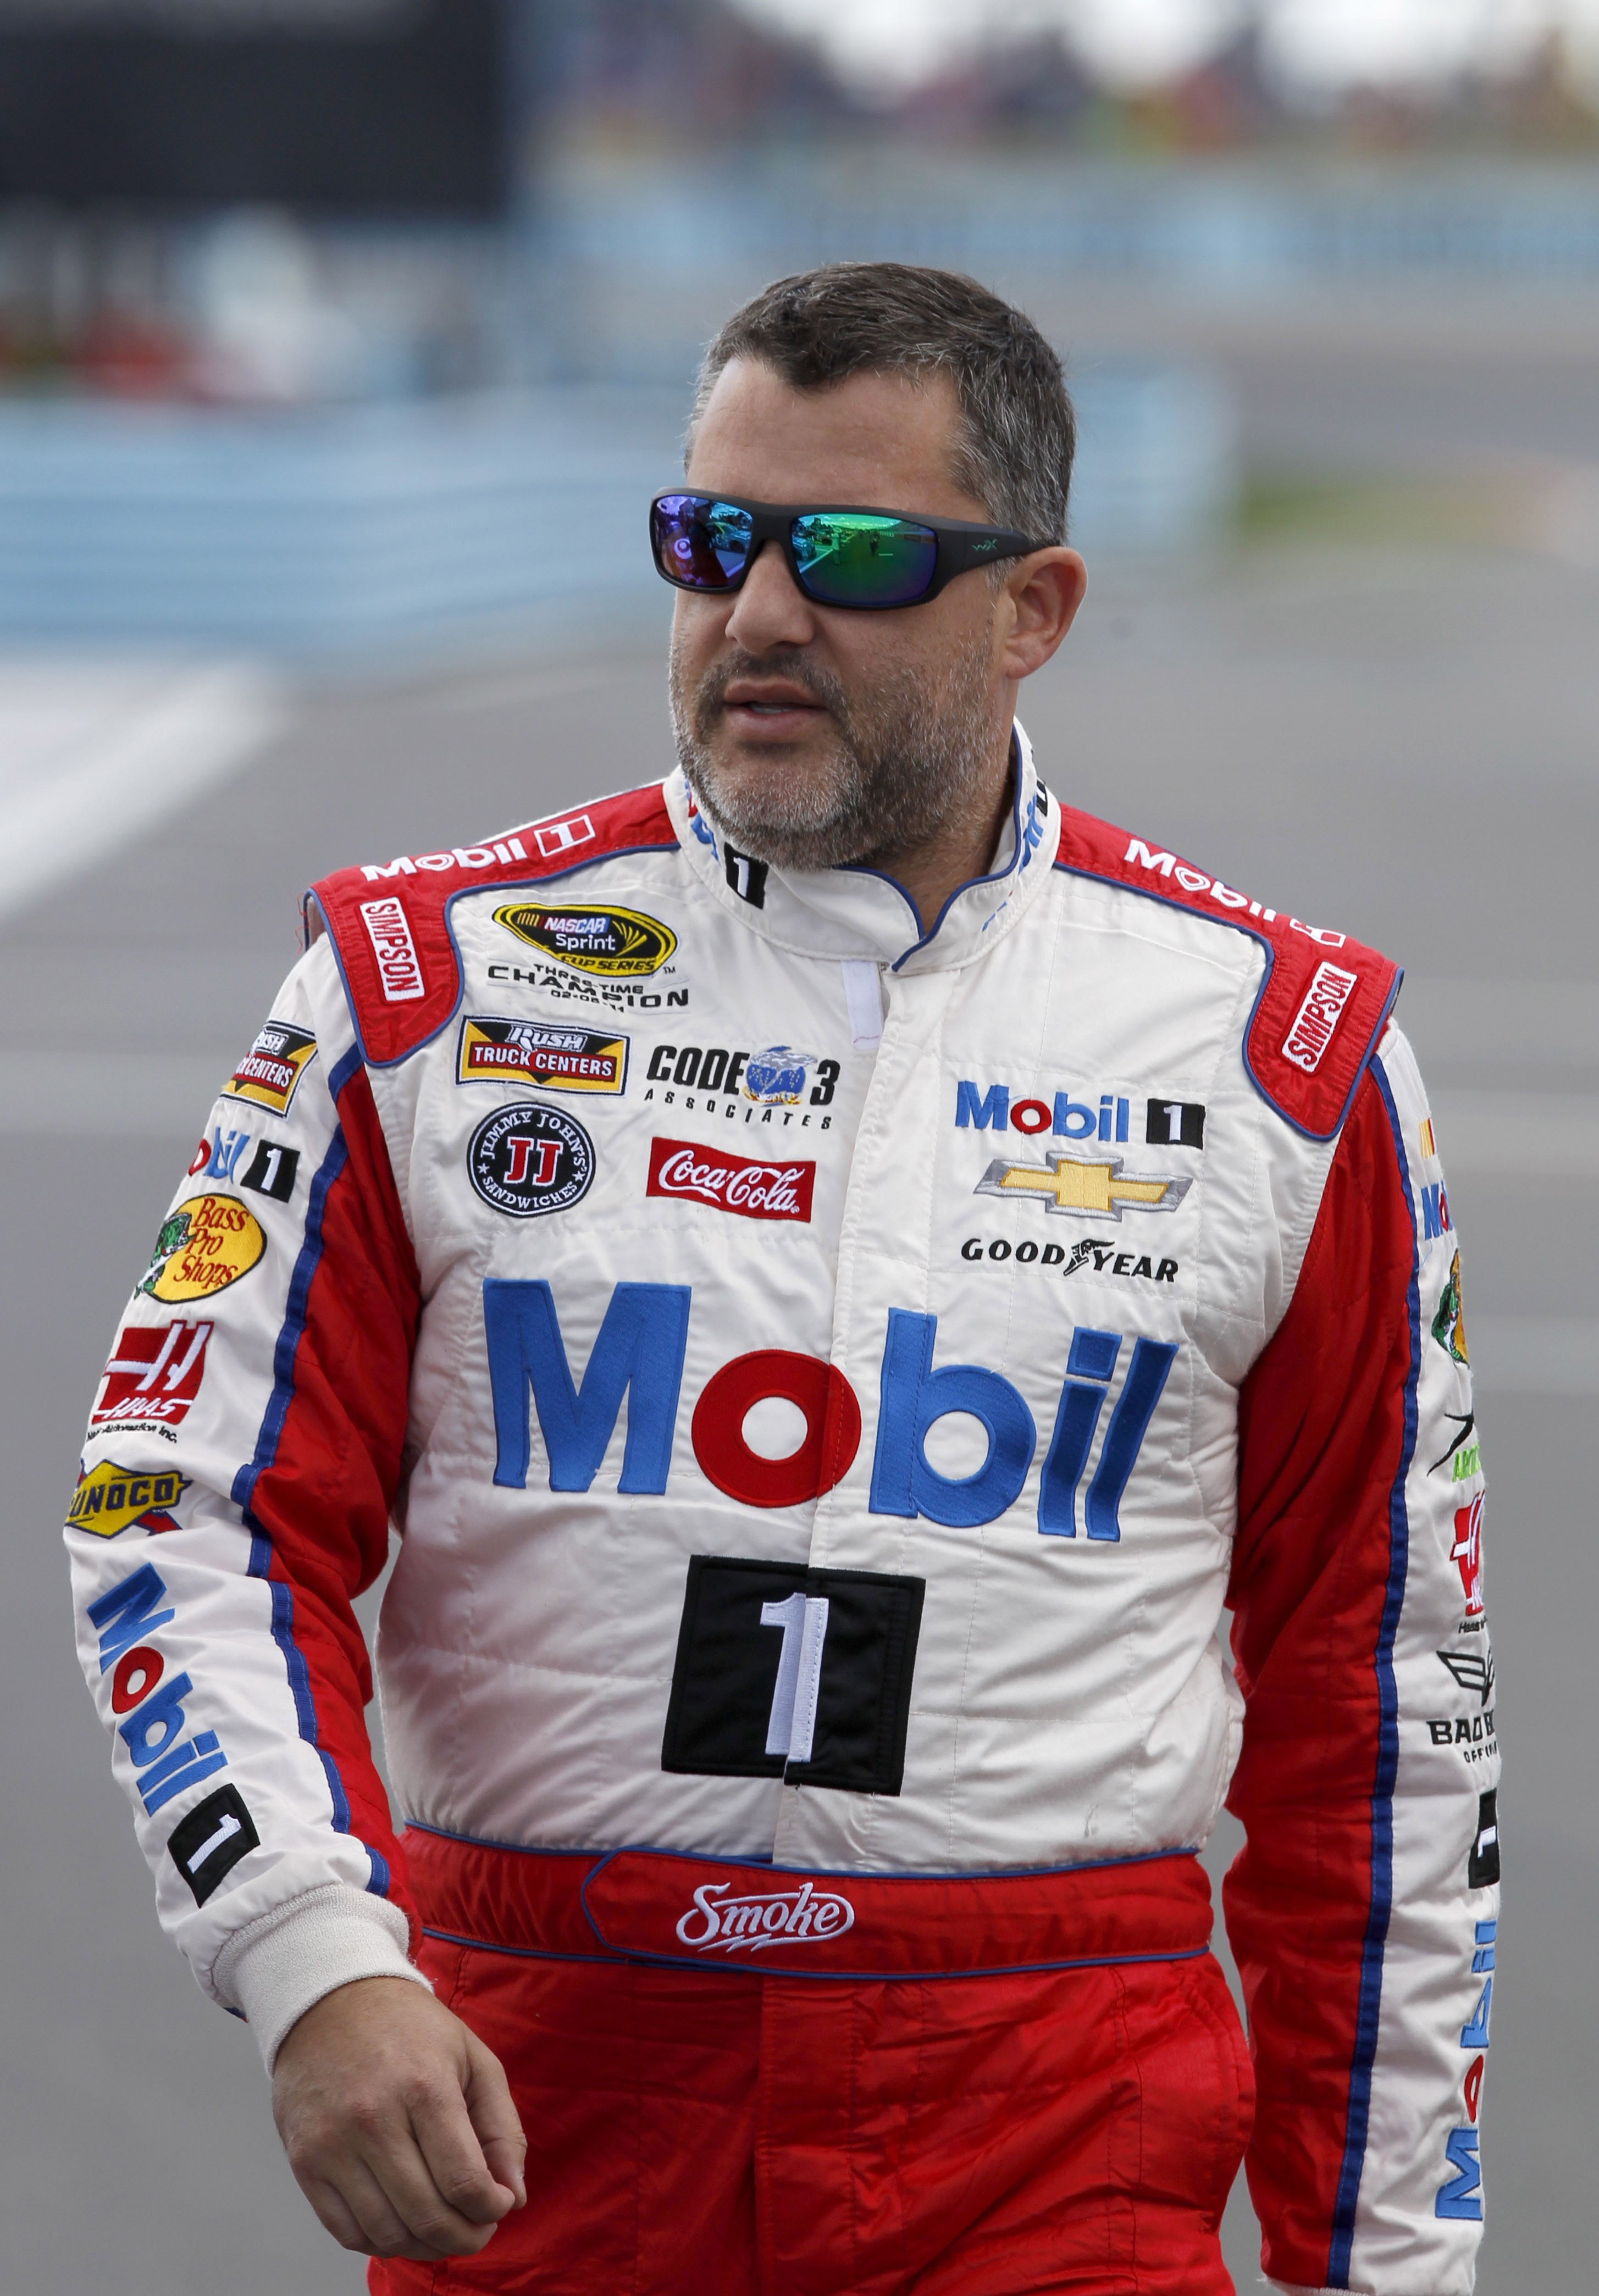 Tony Stewart's legacy is both marked by excellence and marred by controversy